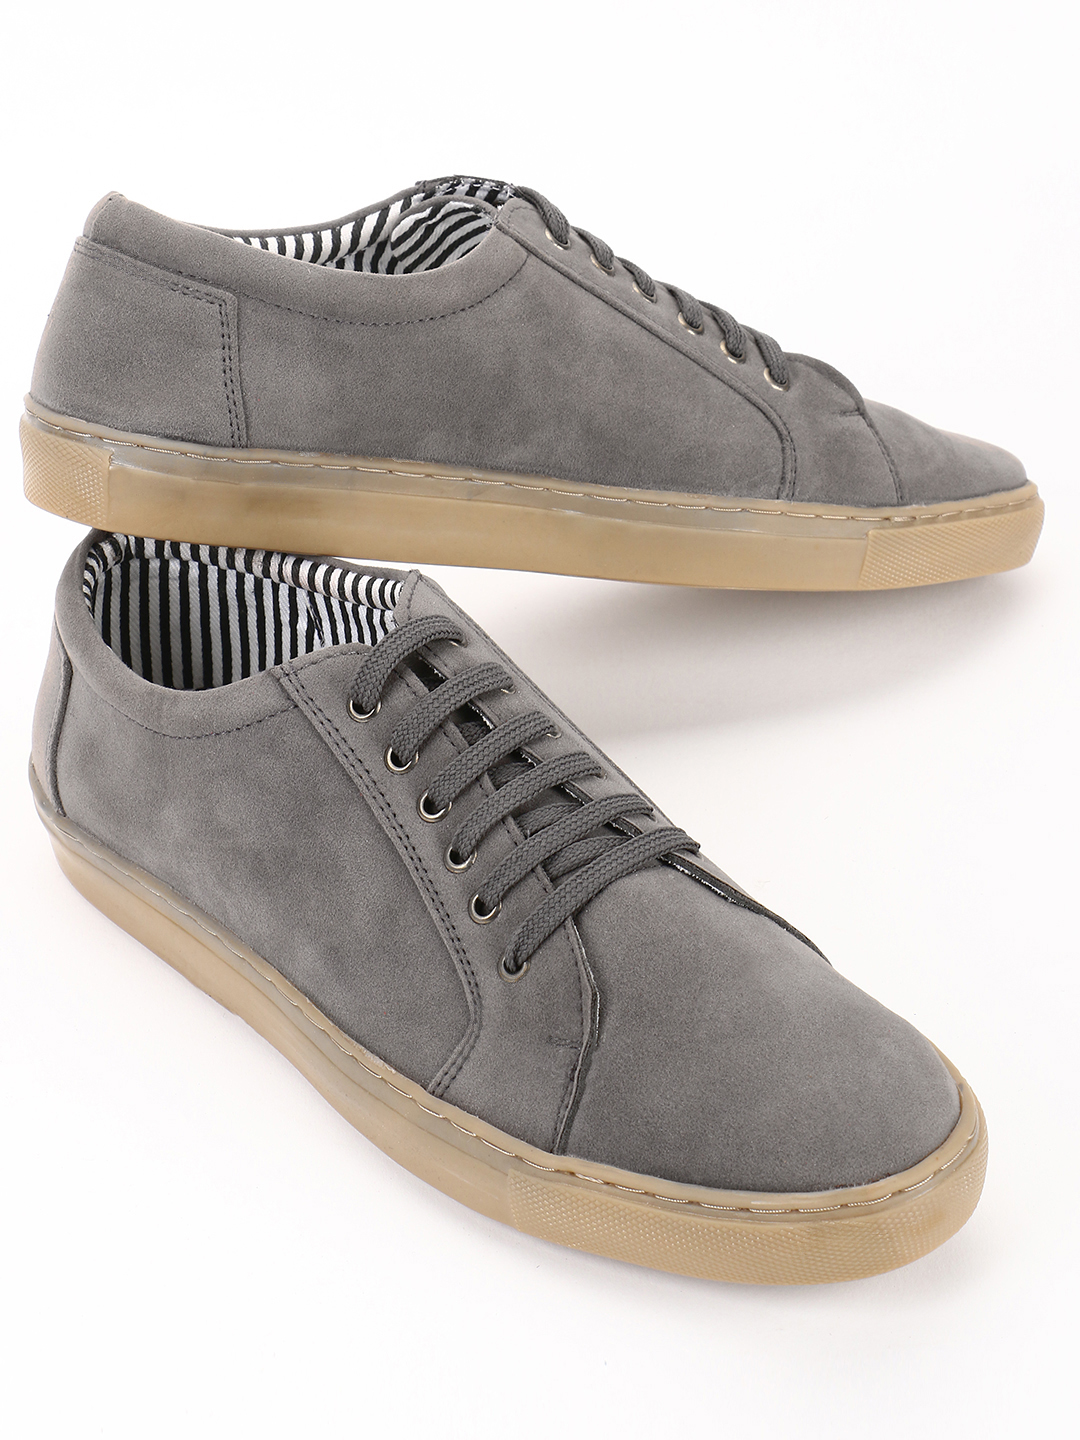 Bolt Of The Good Stuff Grey Suede Lace-Up Sneakers 1